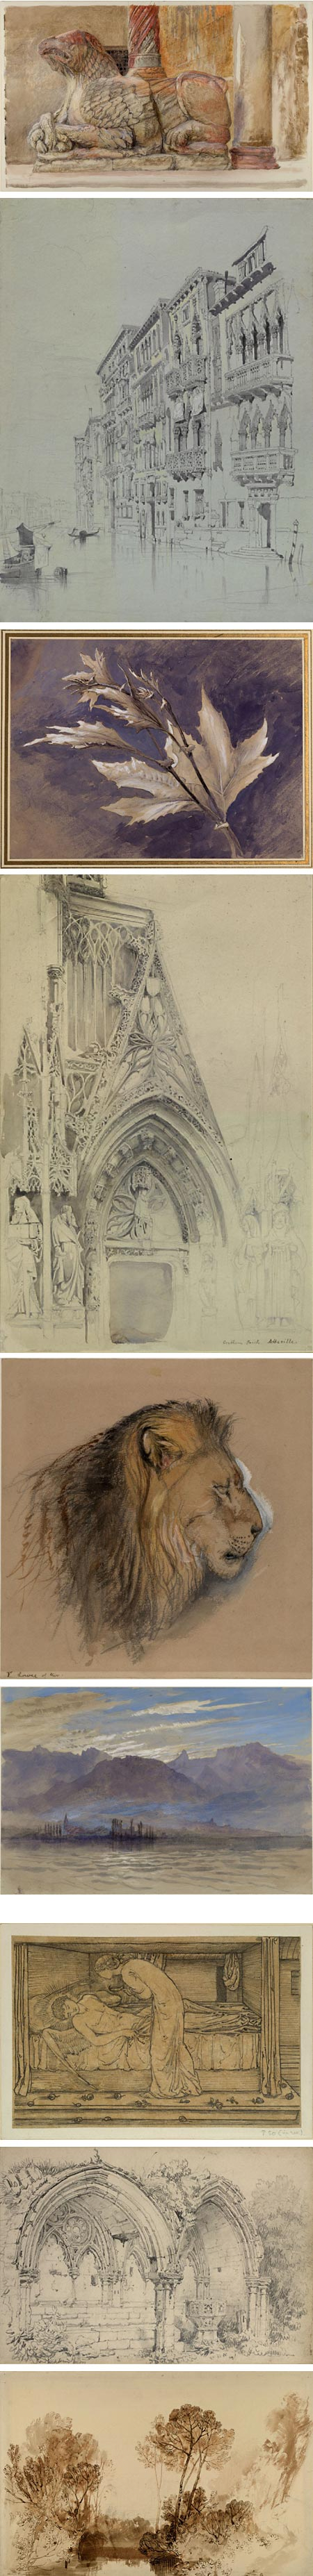 The Elements of Drawing: John Ruskin's Teaching Collection at Oxford - John Ruskin, Sir Edward Coley Burne-Jones, Samuel Prout, JMW Turner